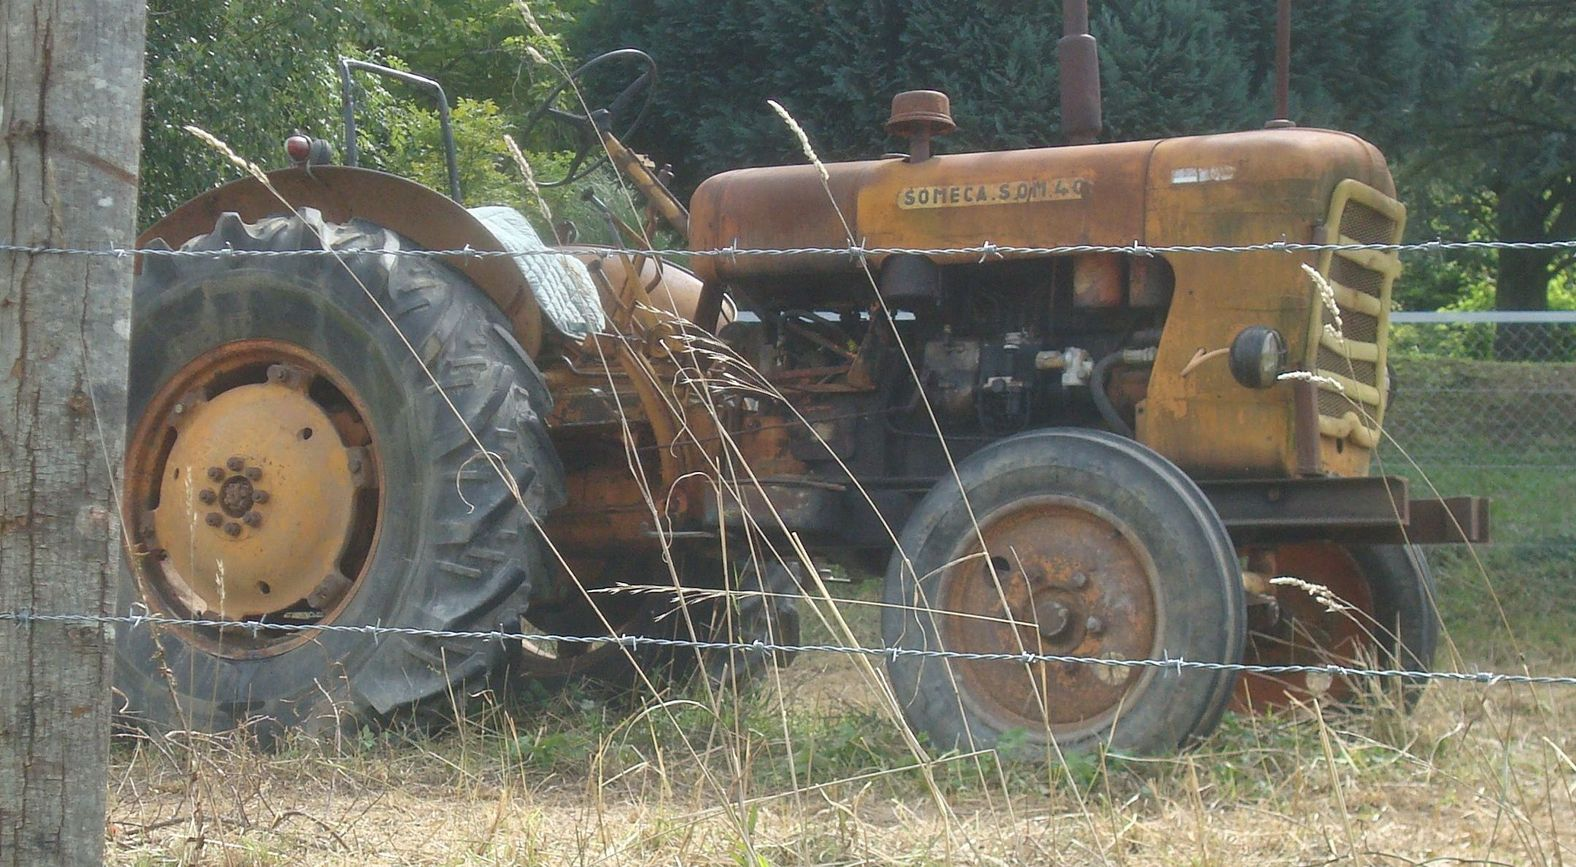 Someca Tracteur (france)